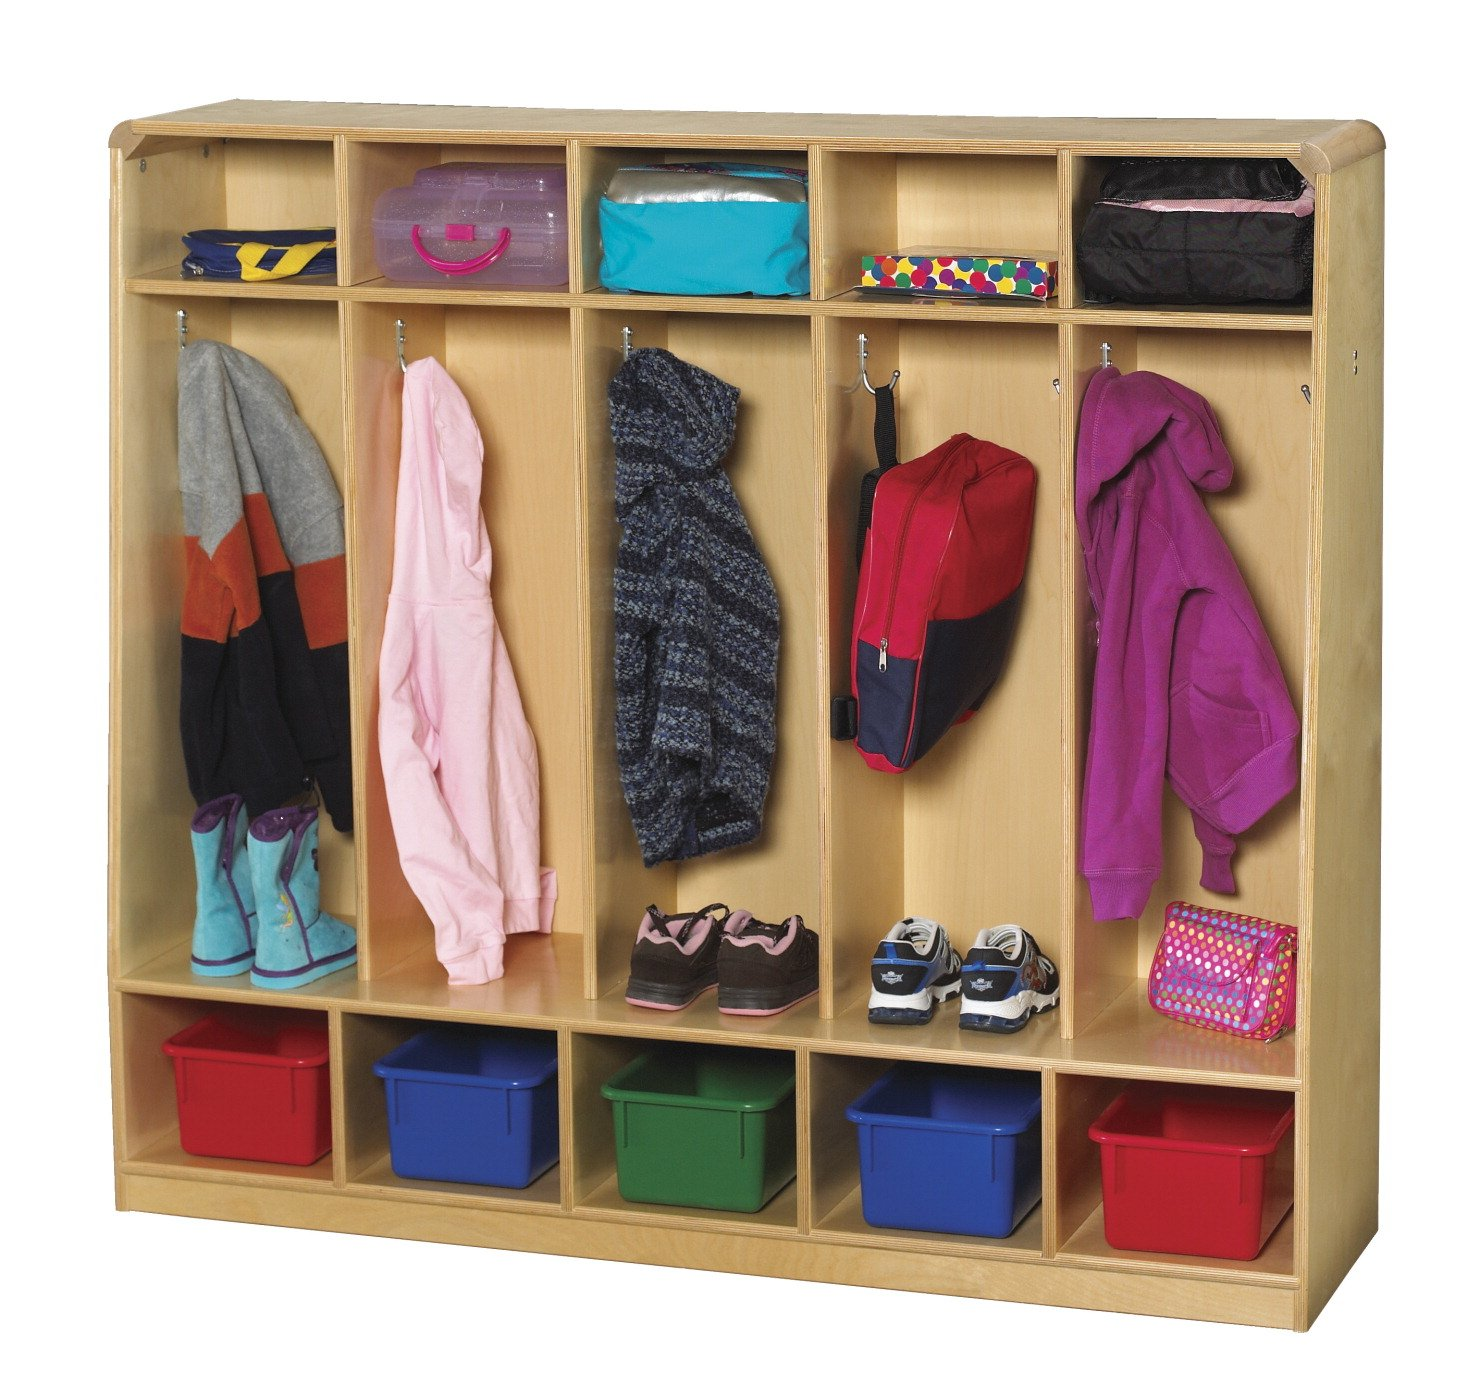 Childcraft Korners for Kids Bench Coat Locker, 5 Compartments, 13-3/4 x 53-3/4 x 48 Inches